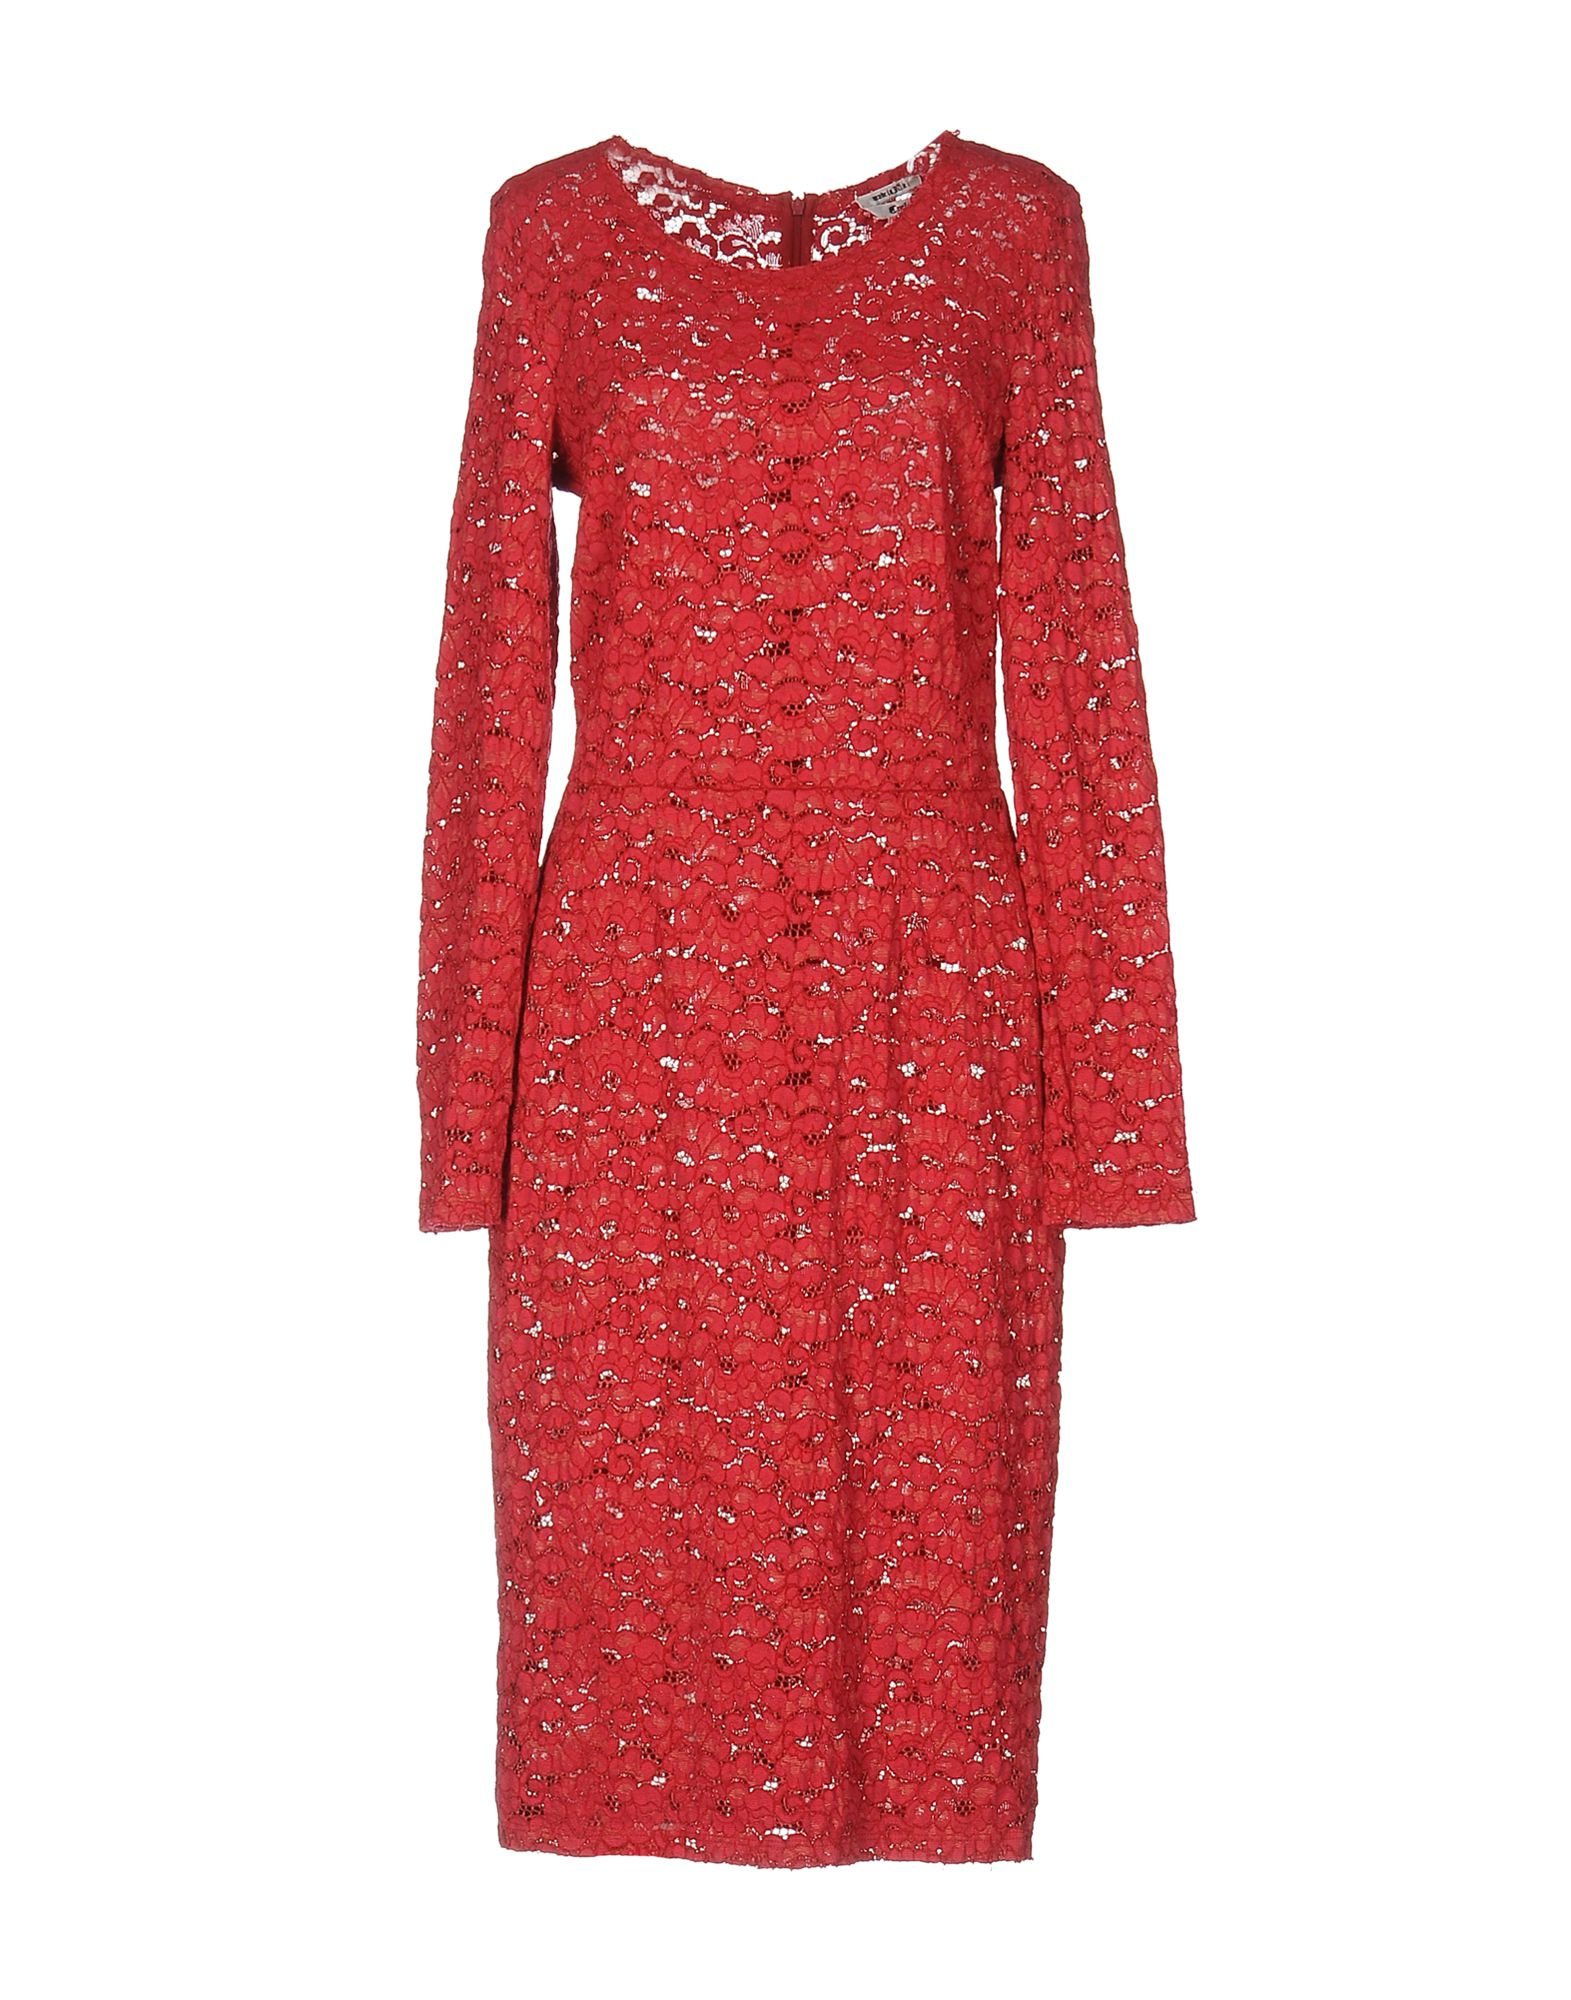 CYCLE Knee-Length Dress in Red